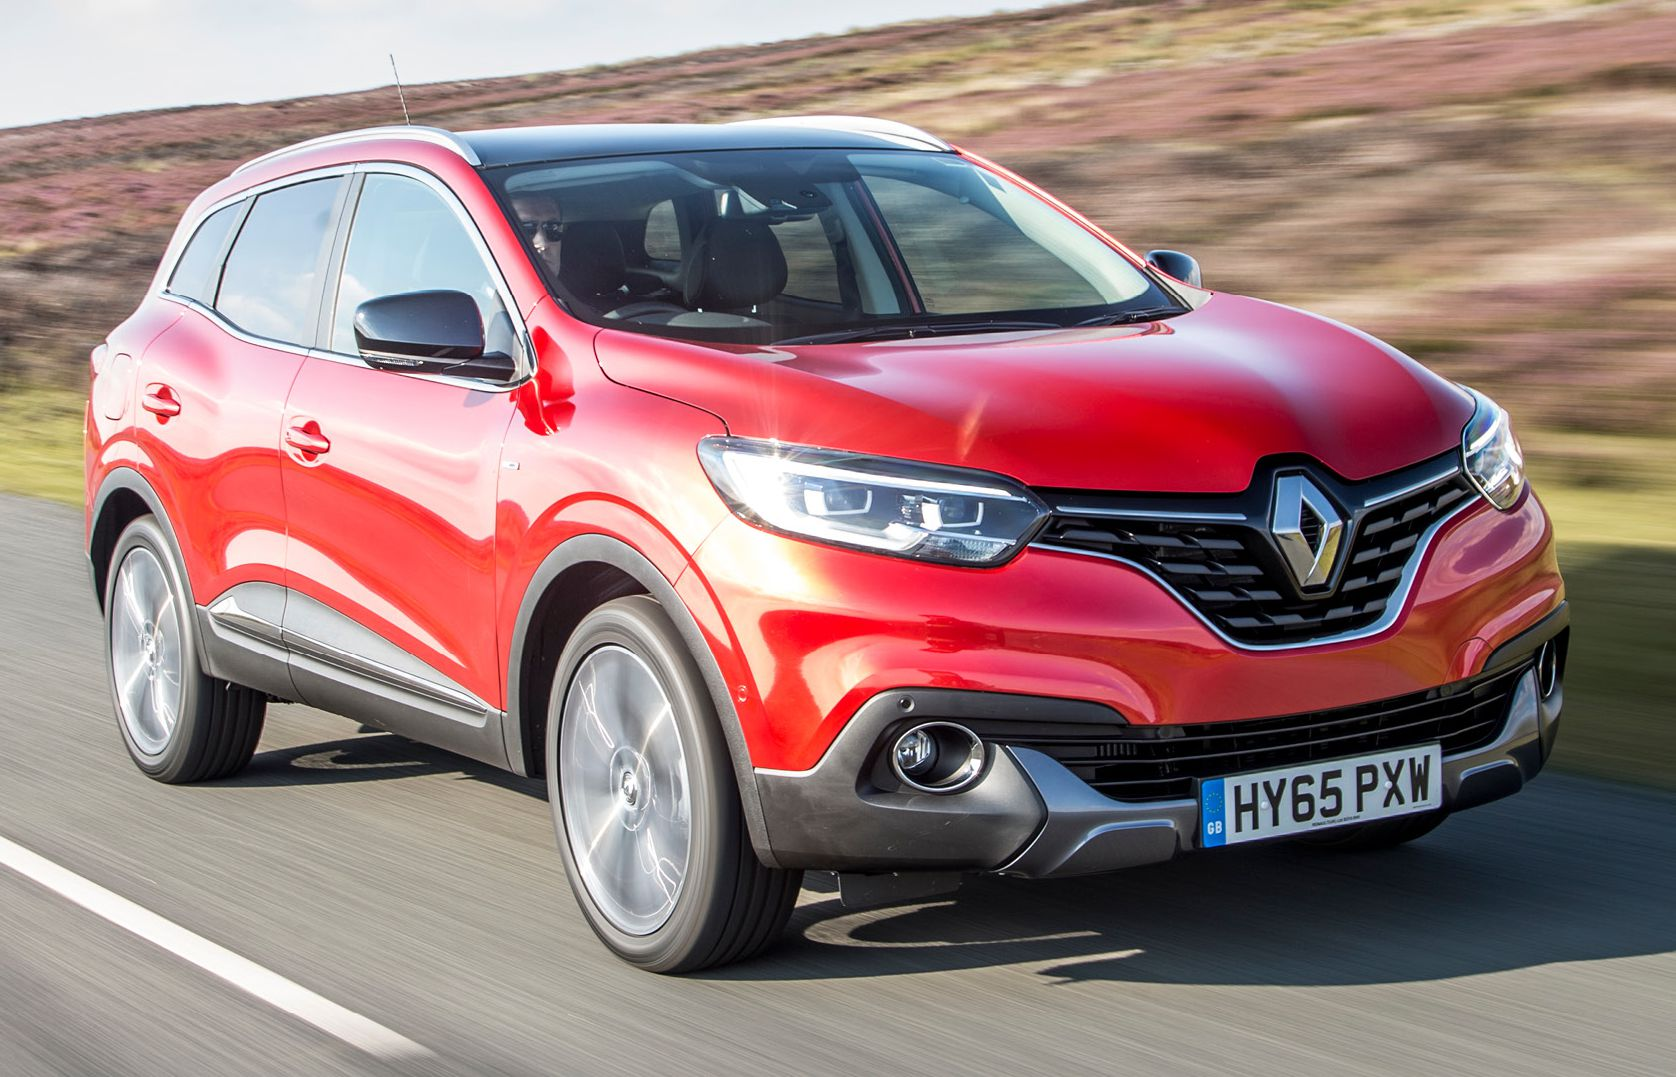 THE Renault Kadjar